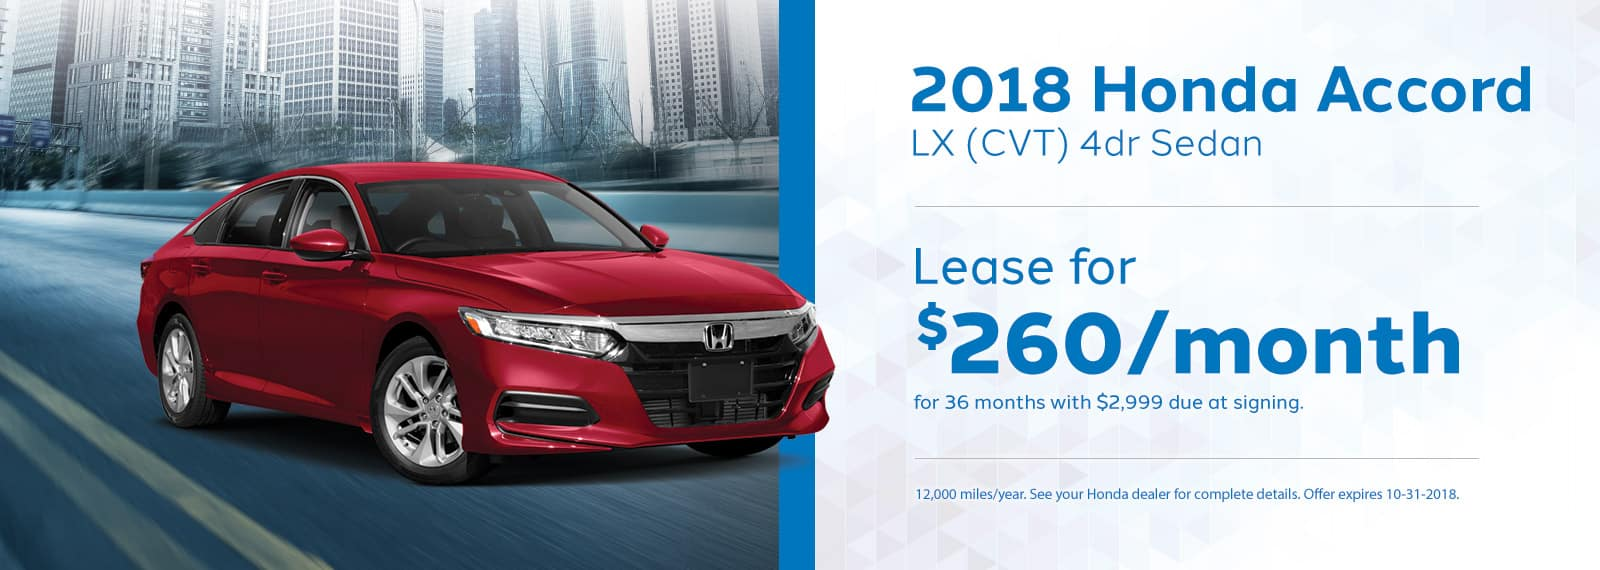 Accord LX Genthe Honda Lease Offer September 2018 Homepage